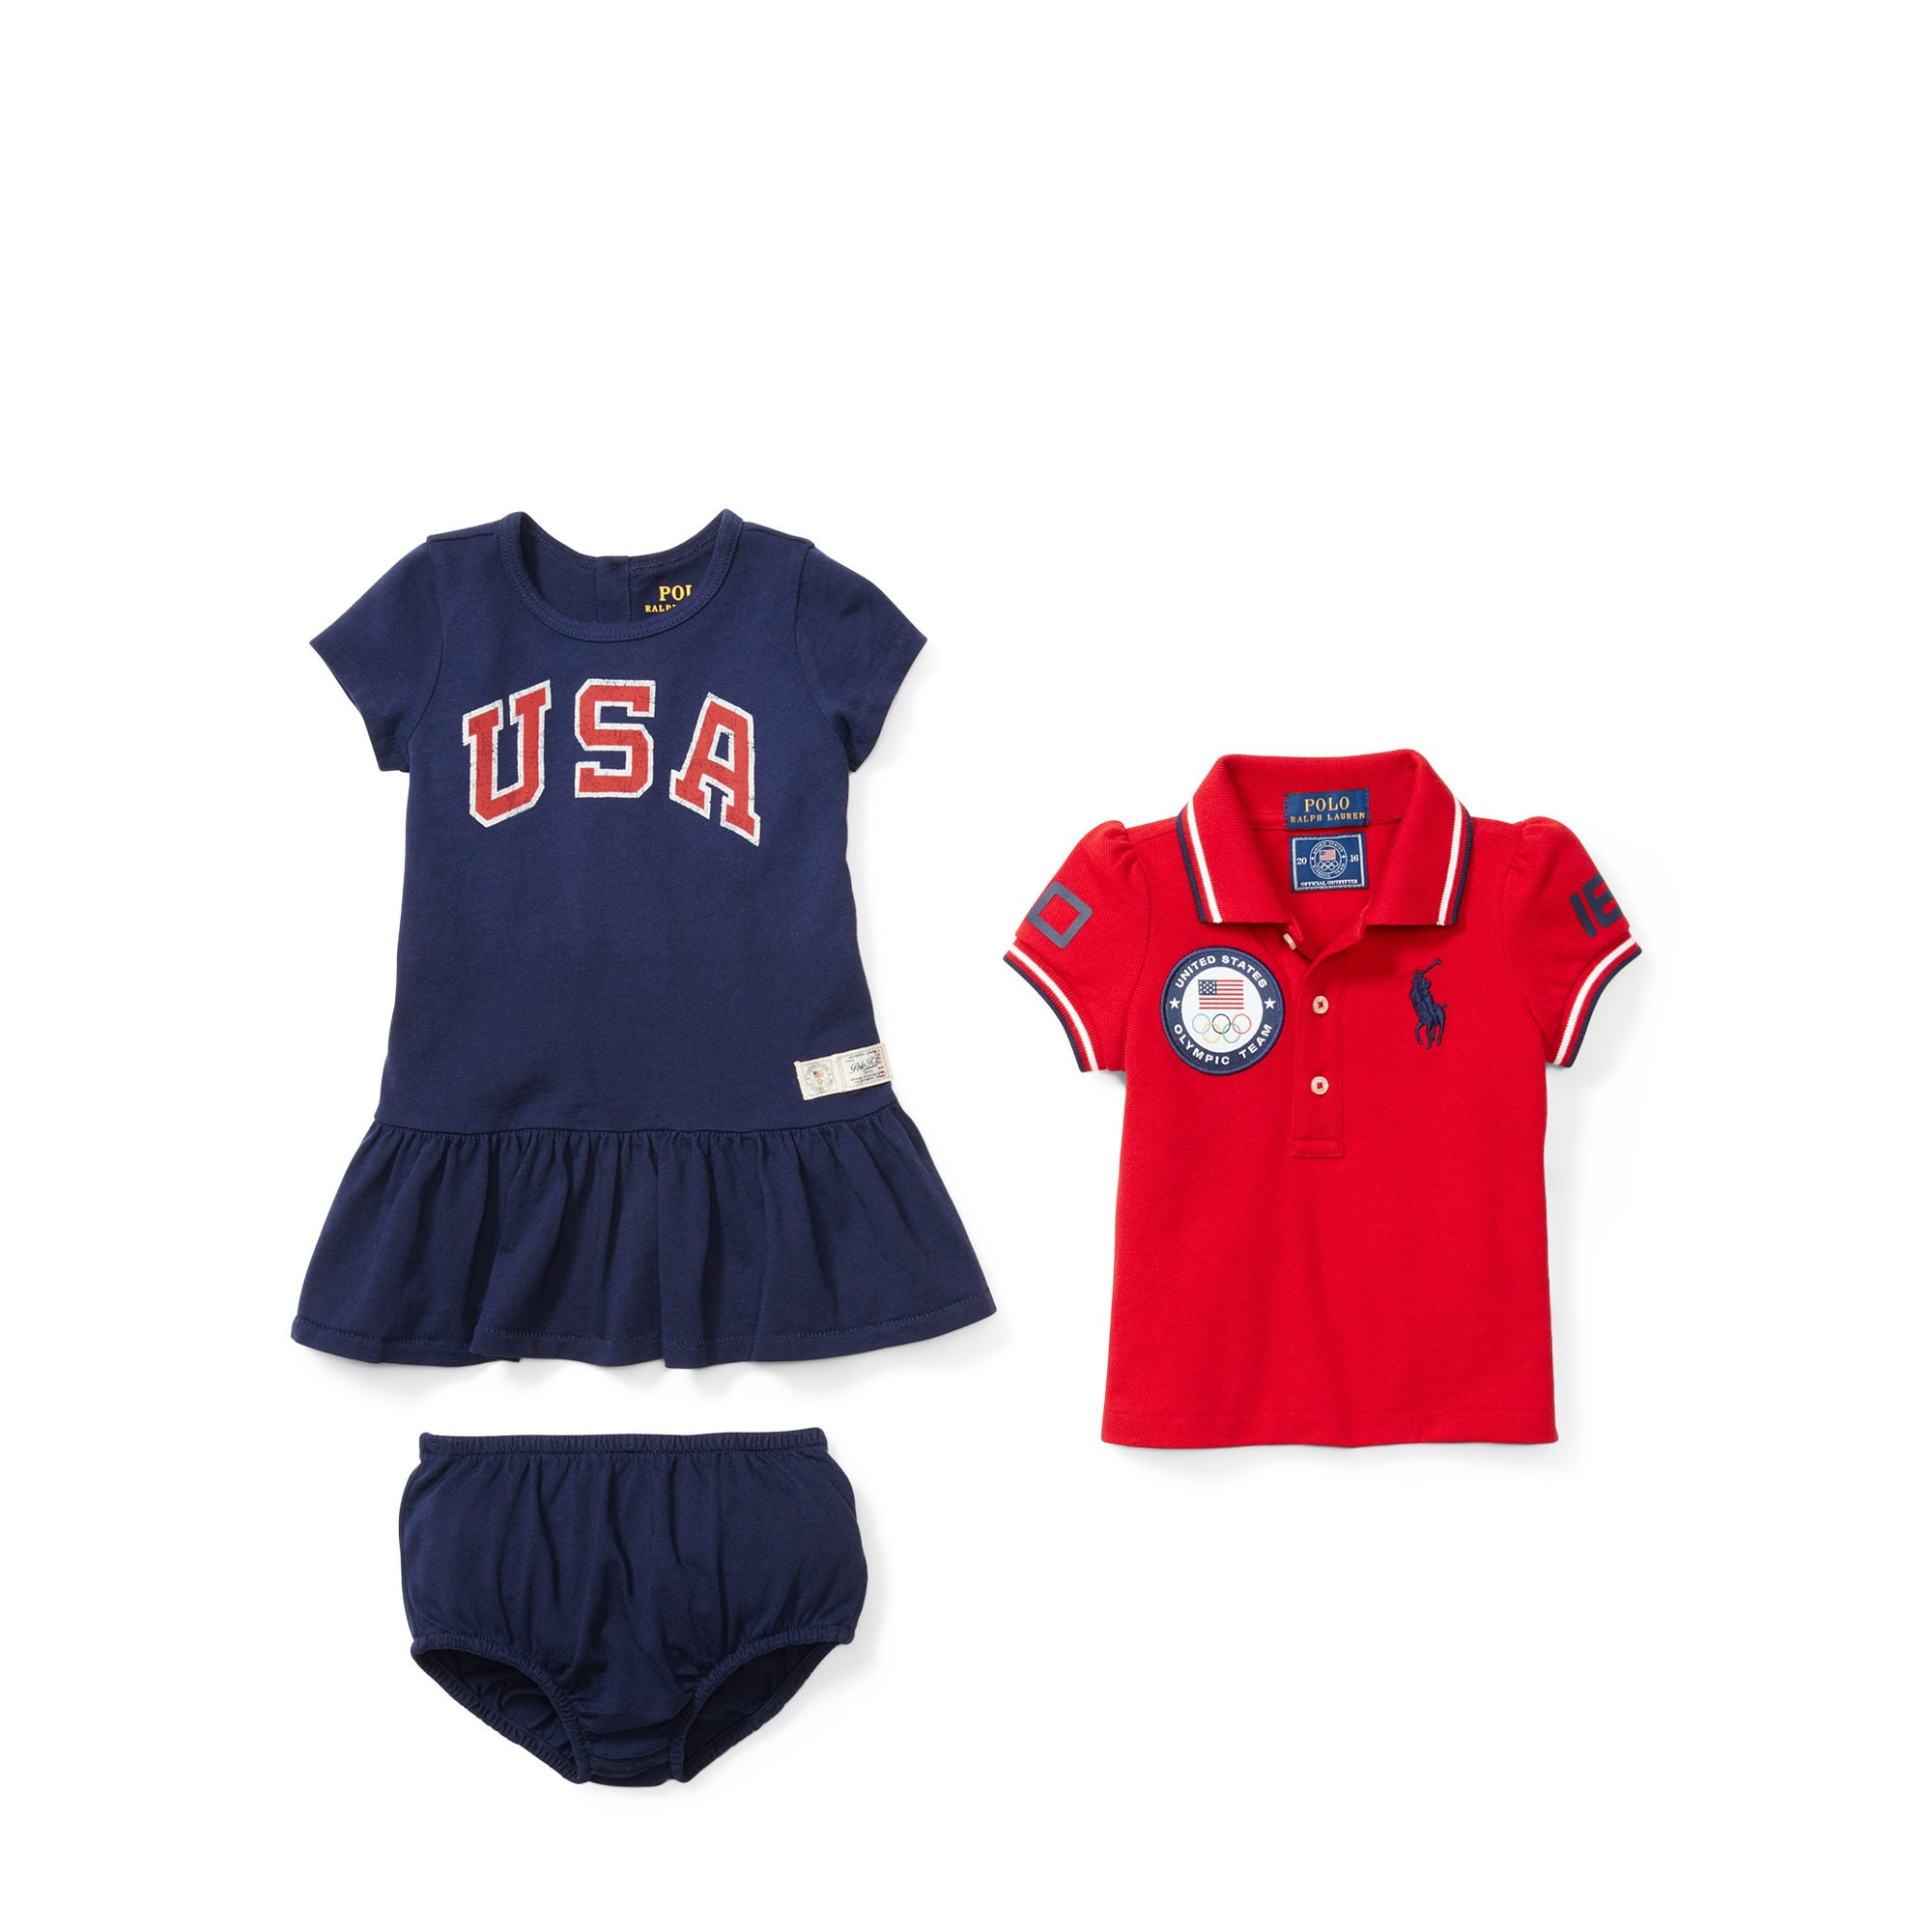 Dress Them Up in Ralph Lauren\u0026#39;s 2016 Team USA Olympic Collection